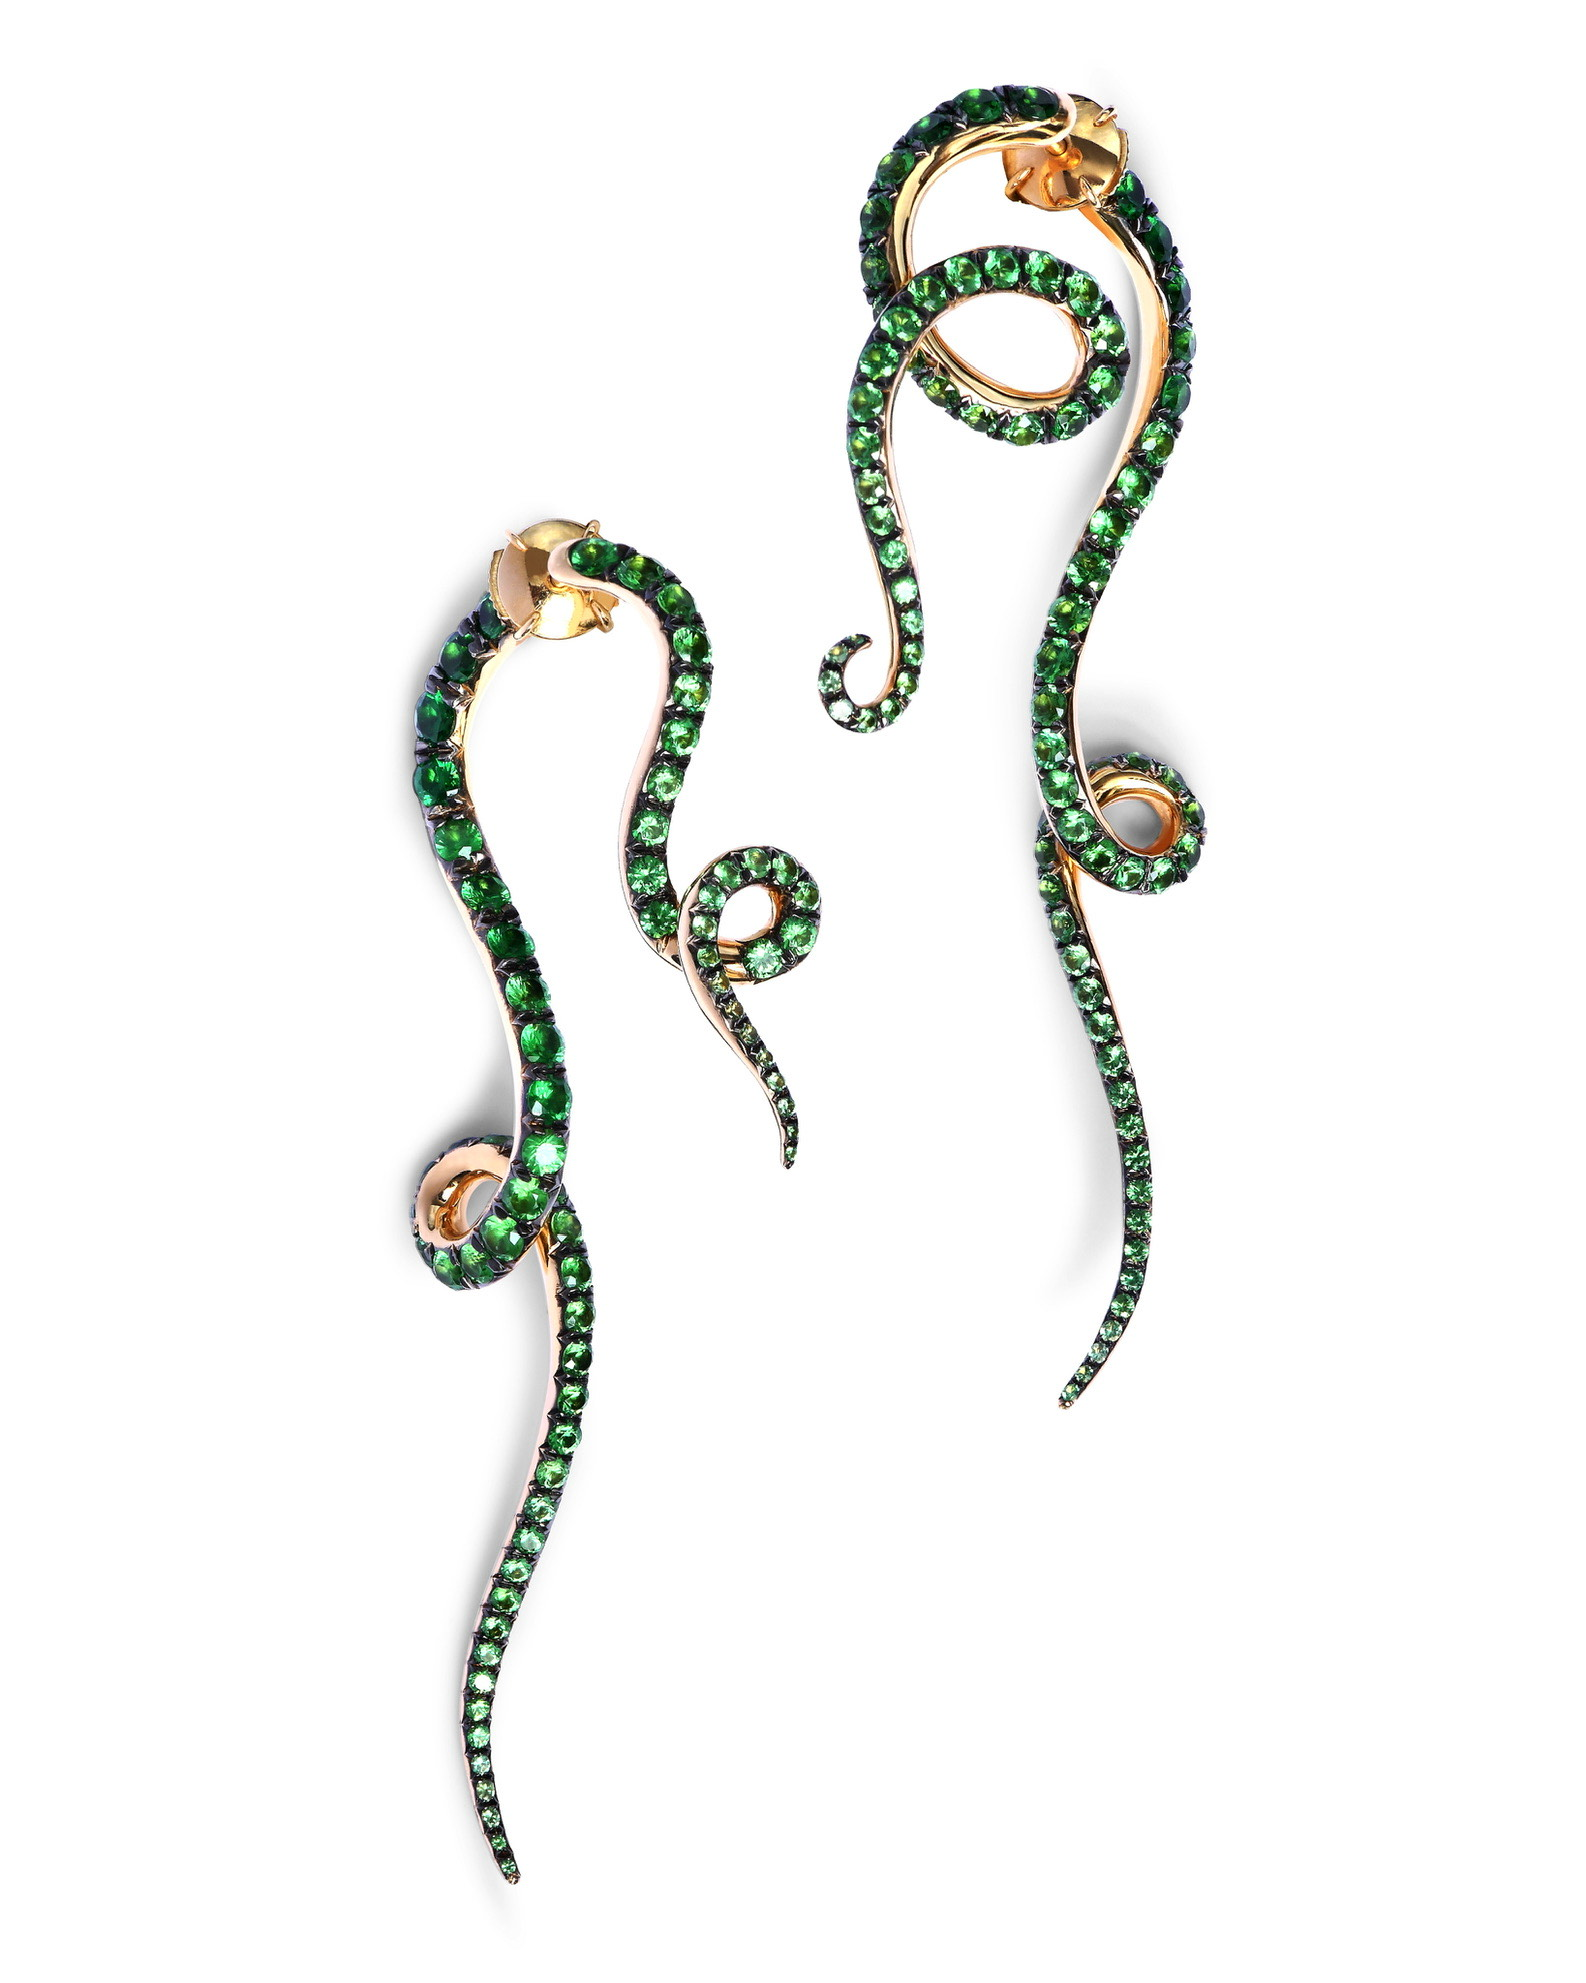 Beanstalk Earrings: Yellow Gold, Tsavorites and Garnets. Image Courtesy of Emmanuel Tarpin